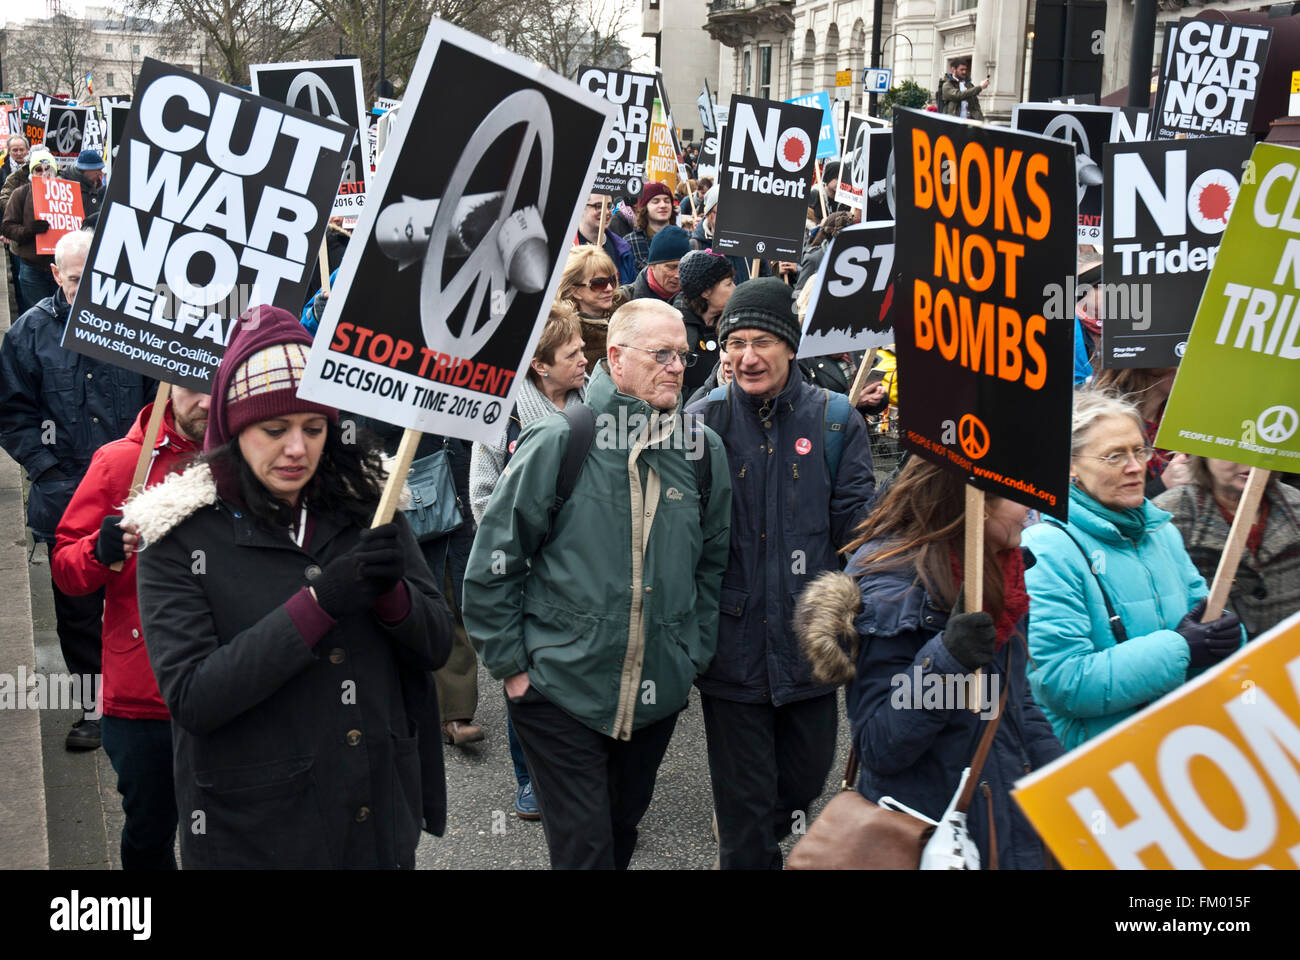 CND demo with posters 'Books not Bombs' 'Stop Trident 'Cut War not Welfare'. London 2016 - Stock Image